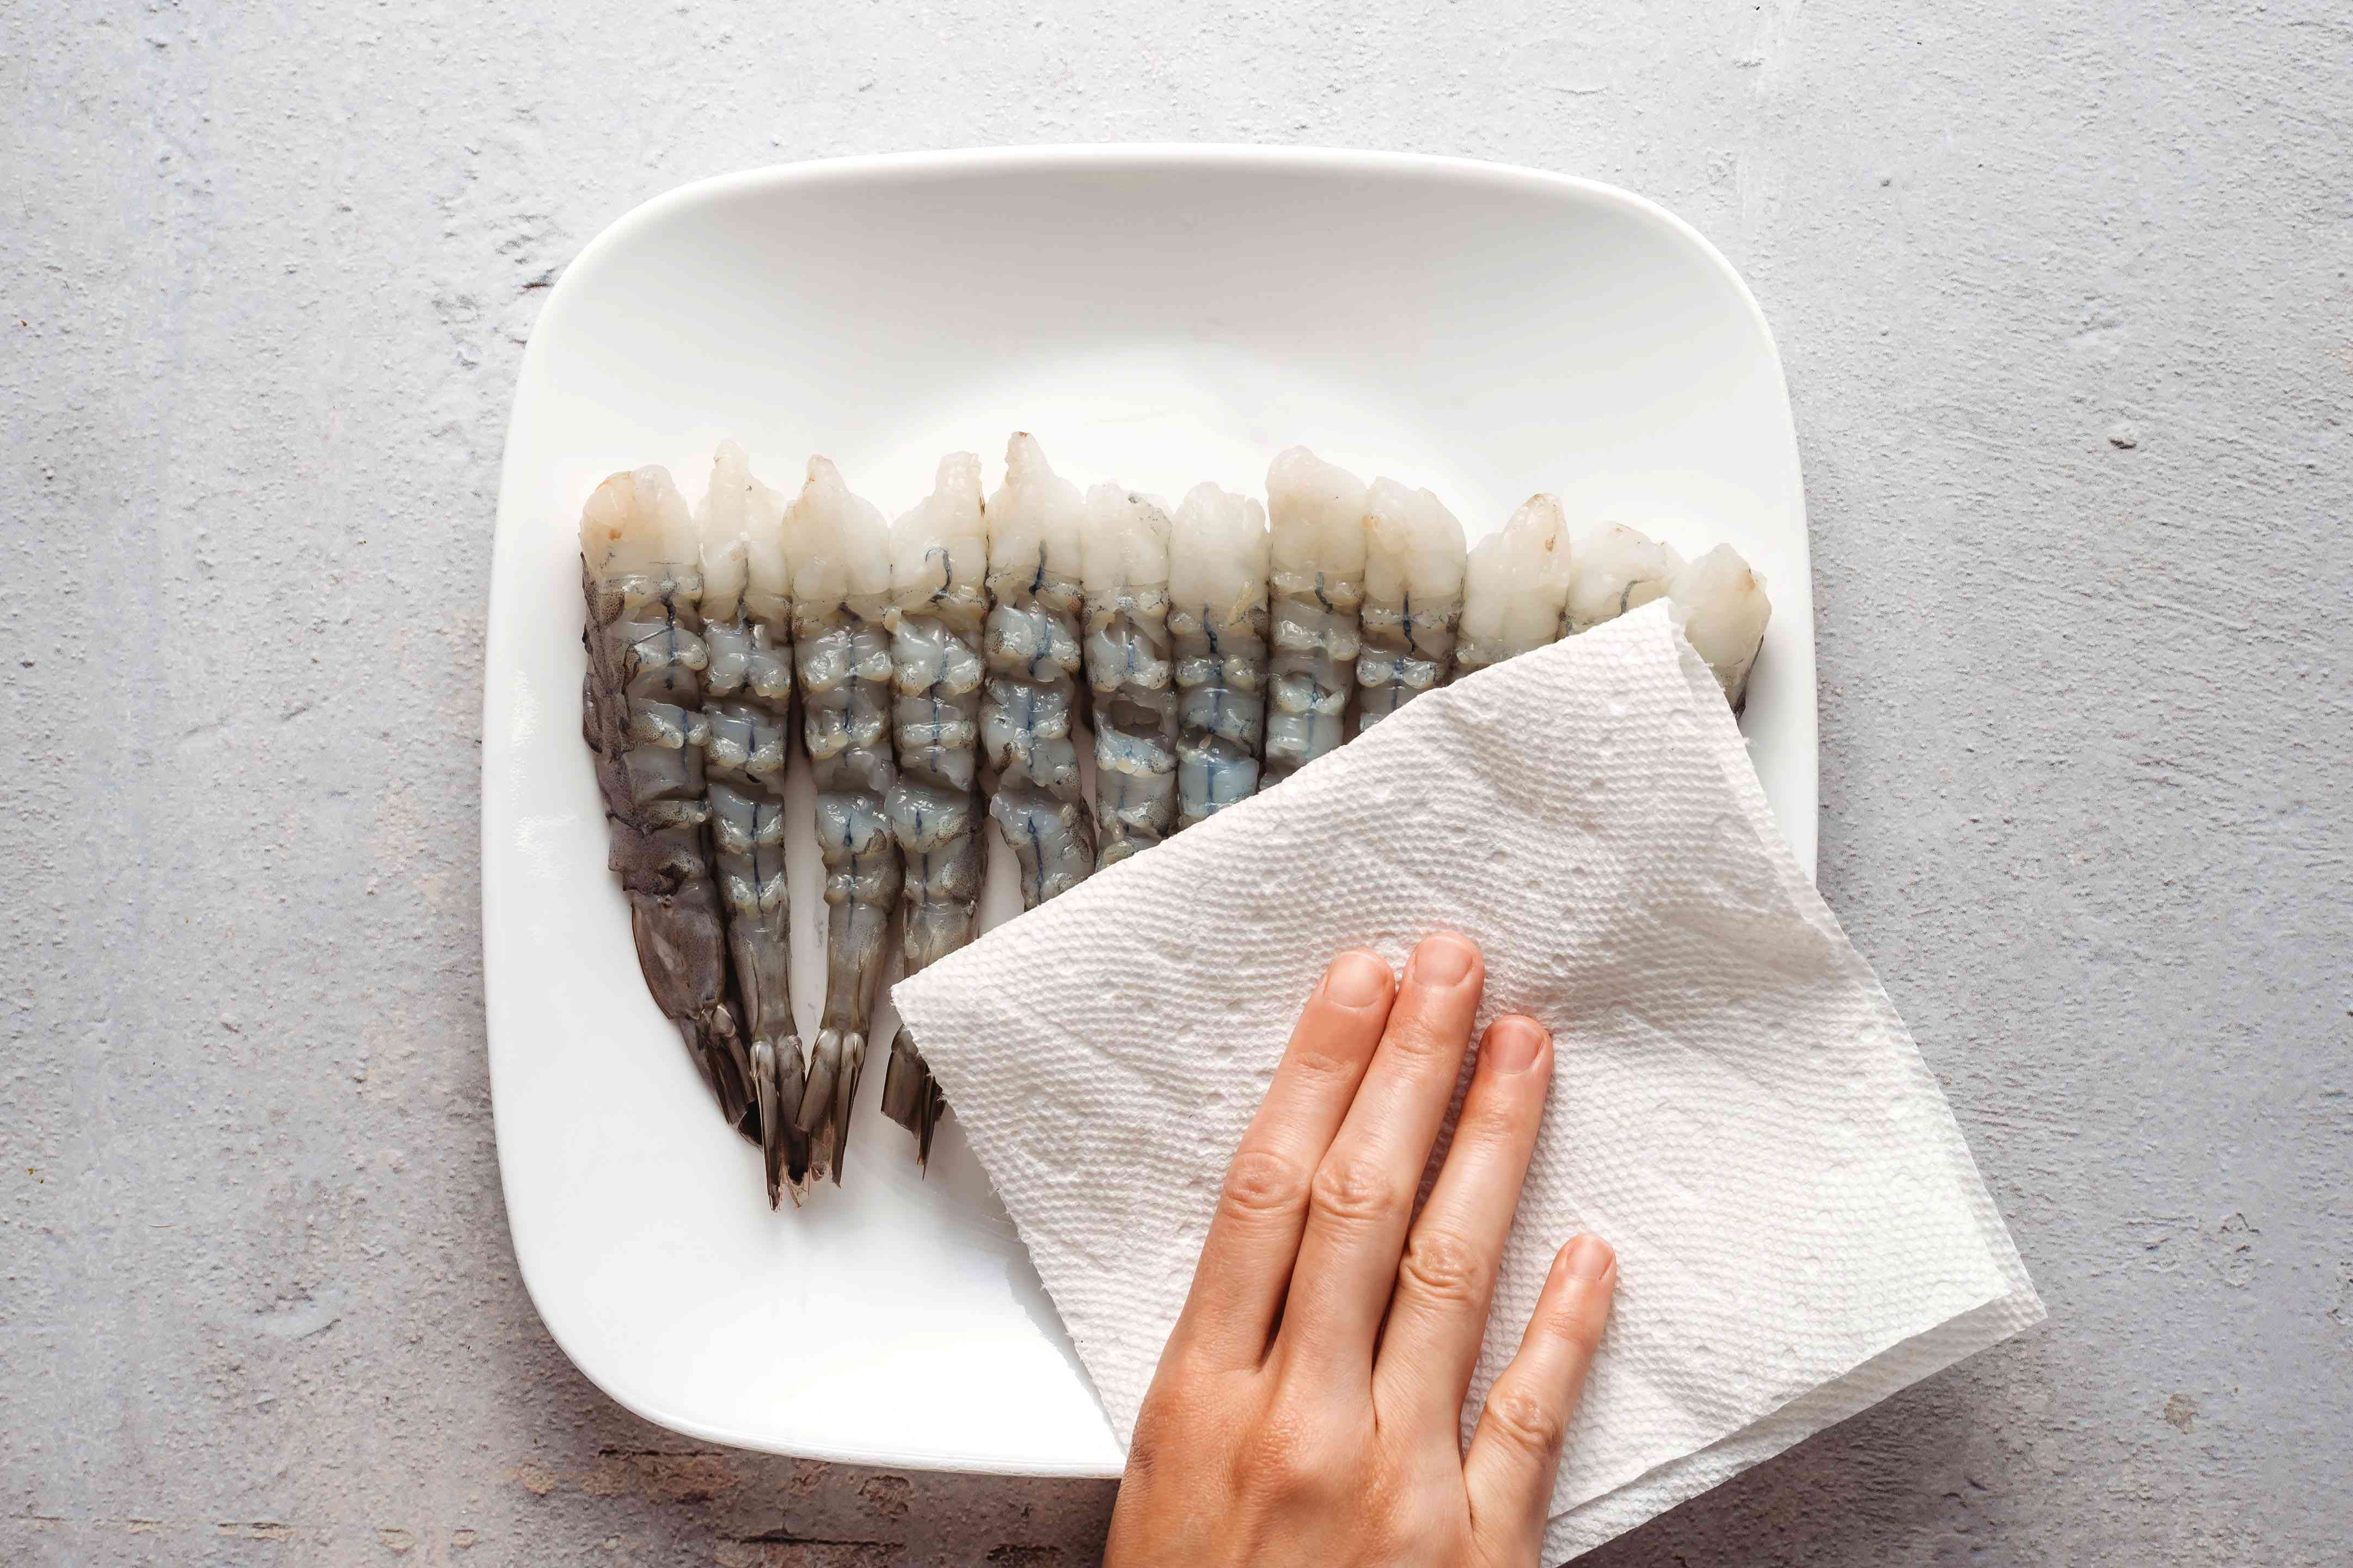 shrimp patted dry with a paper towel